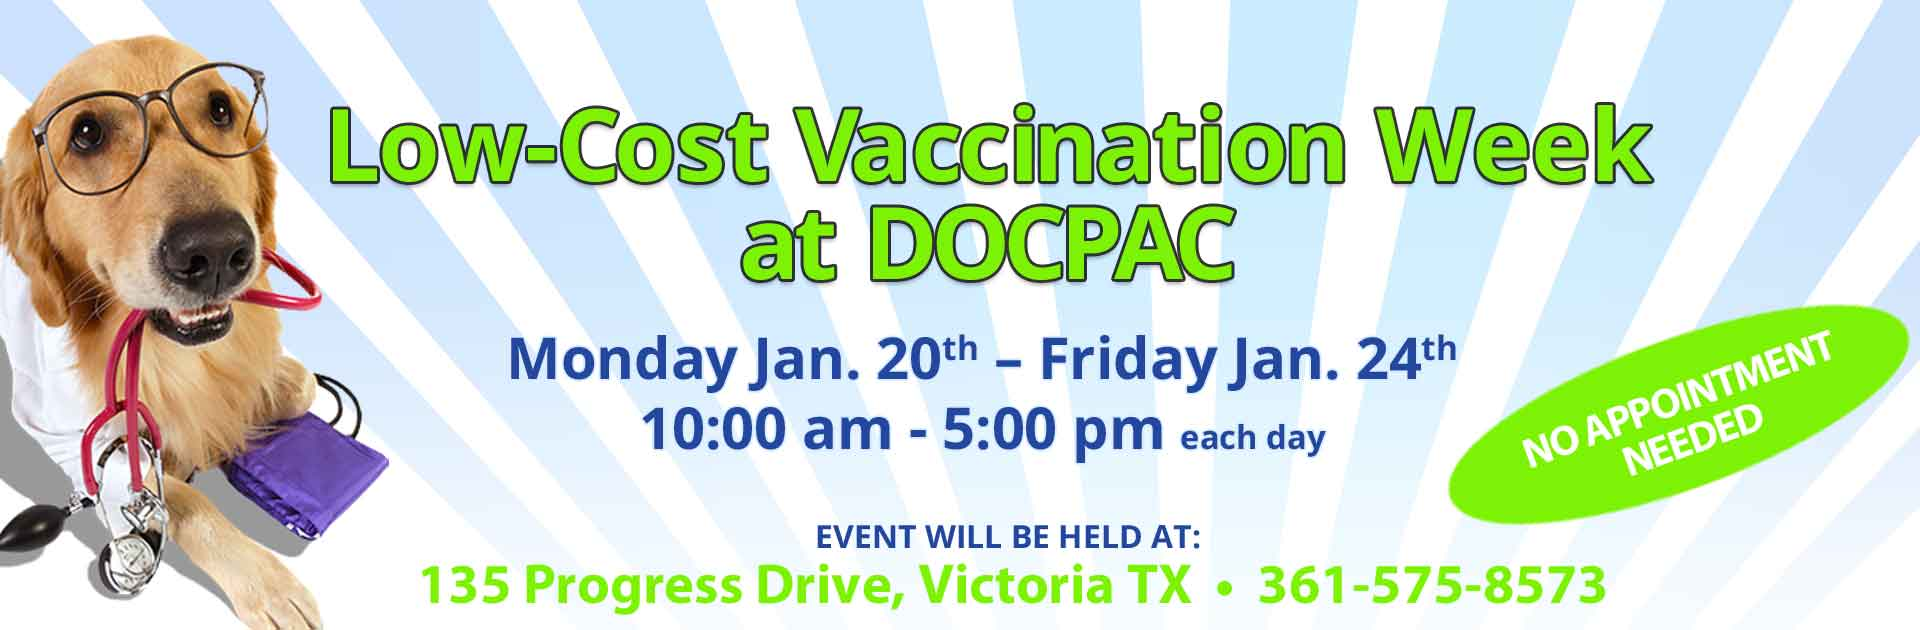 Low-Cost Vaccination Week at DOCPAC